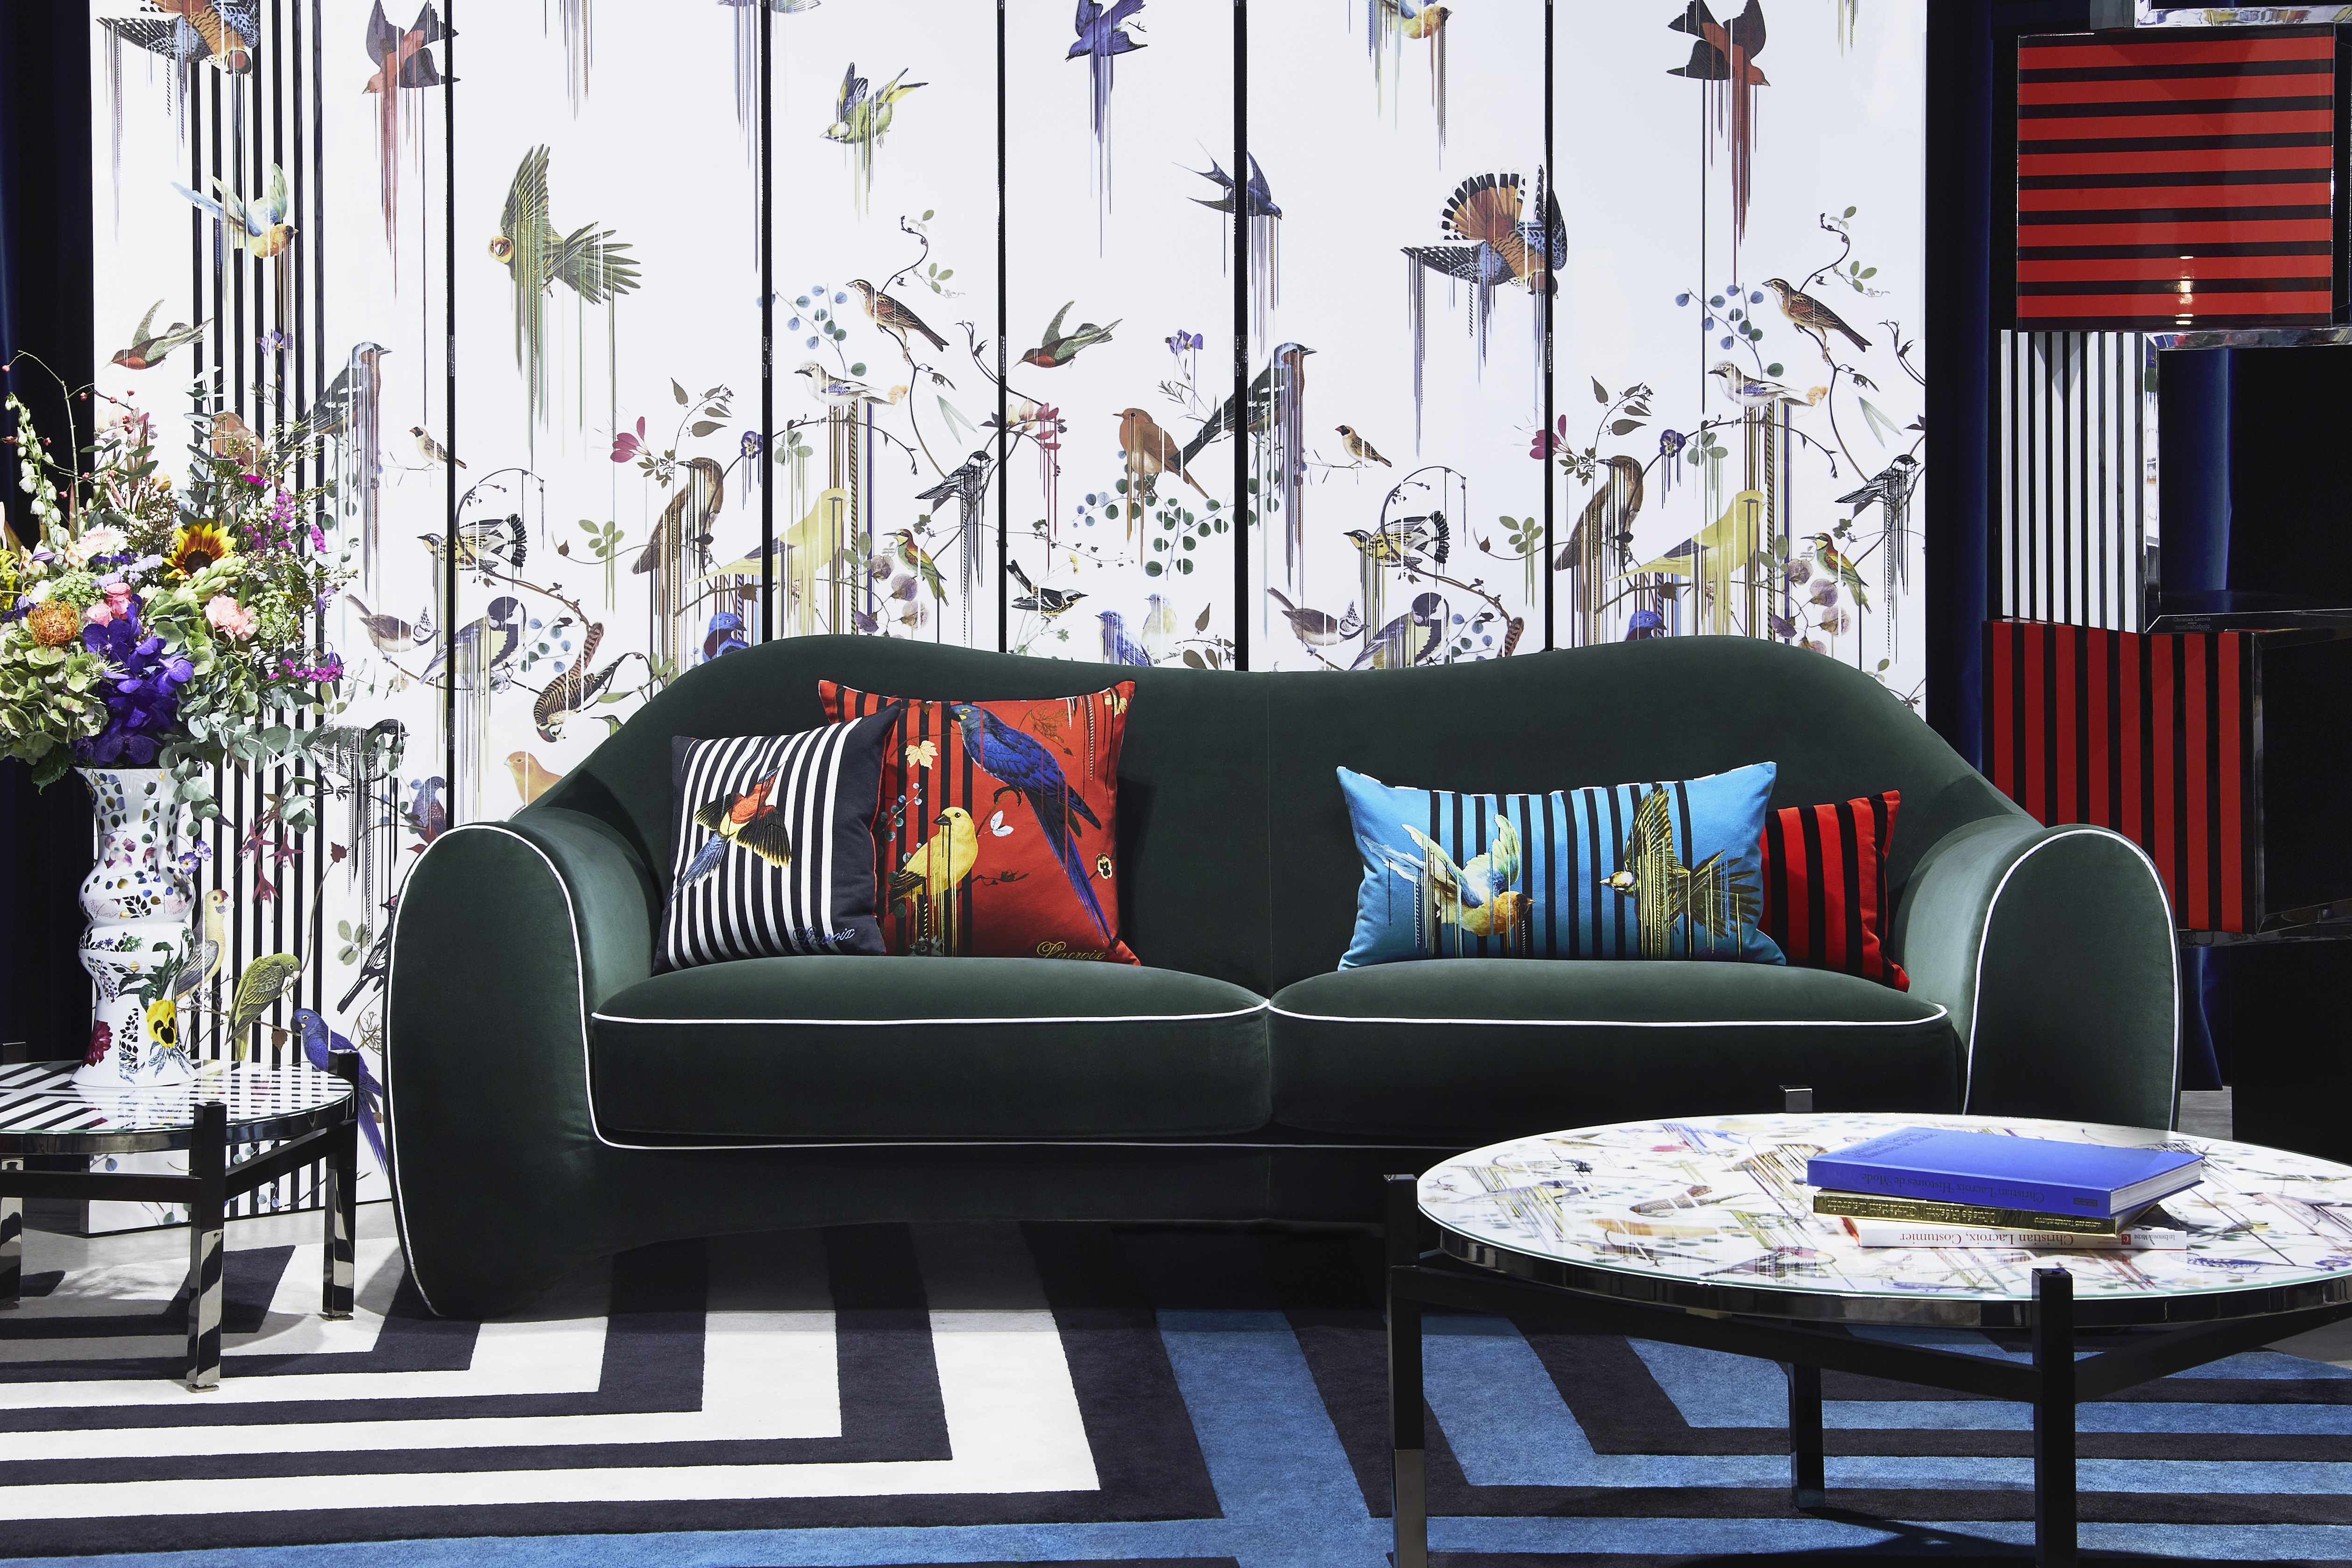 juin 2013 blog decoration maison new york style interior Christian Lacroix Maison pour Roche Bobois 2017 by Neil Bicknell_1.1